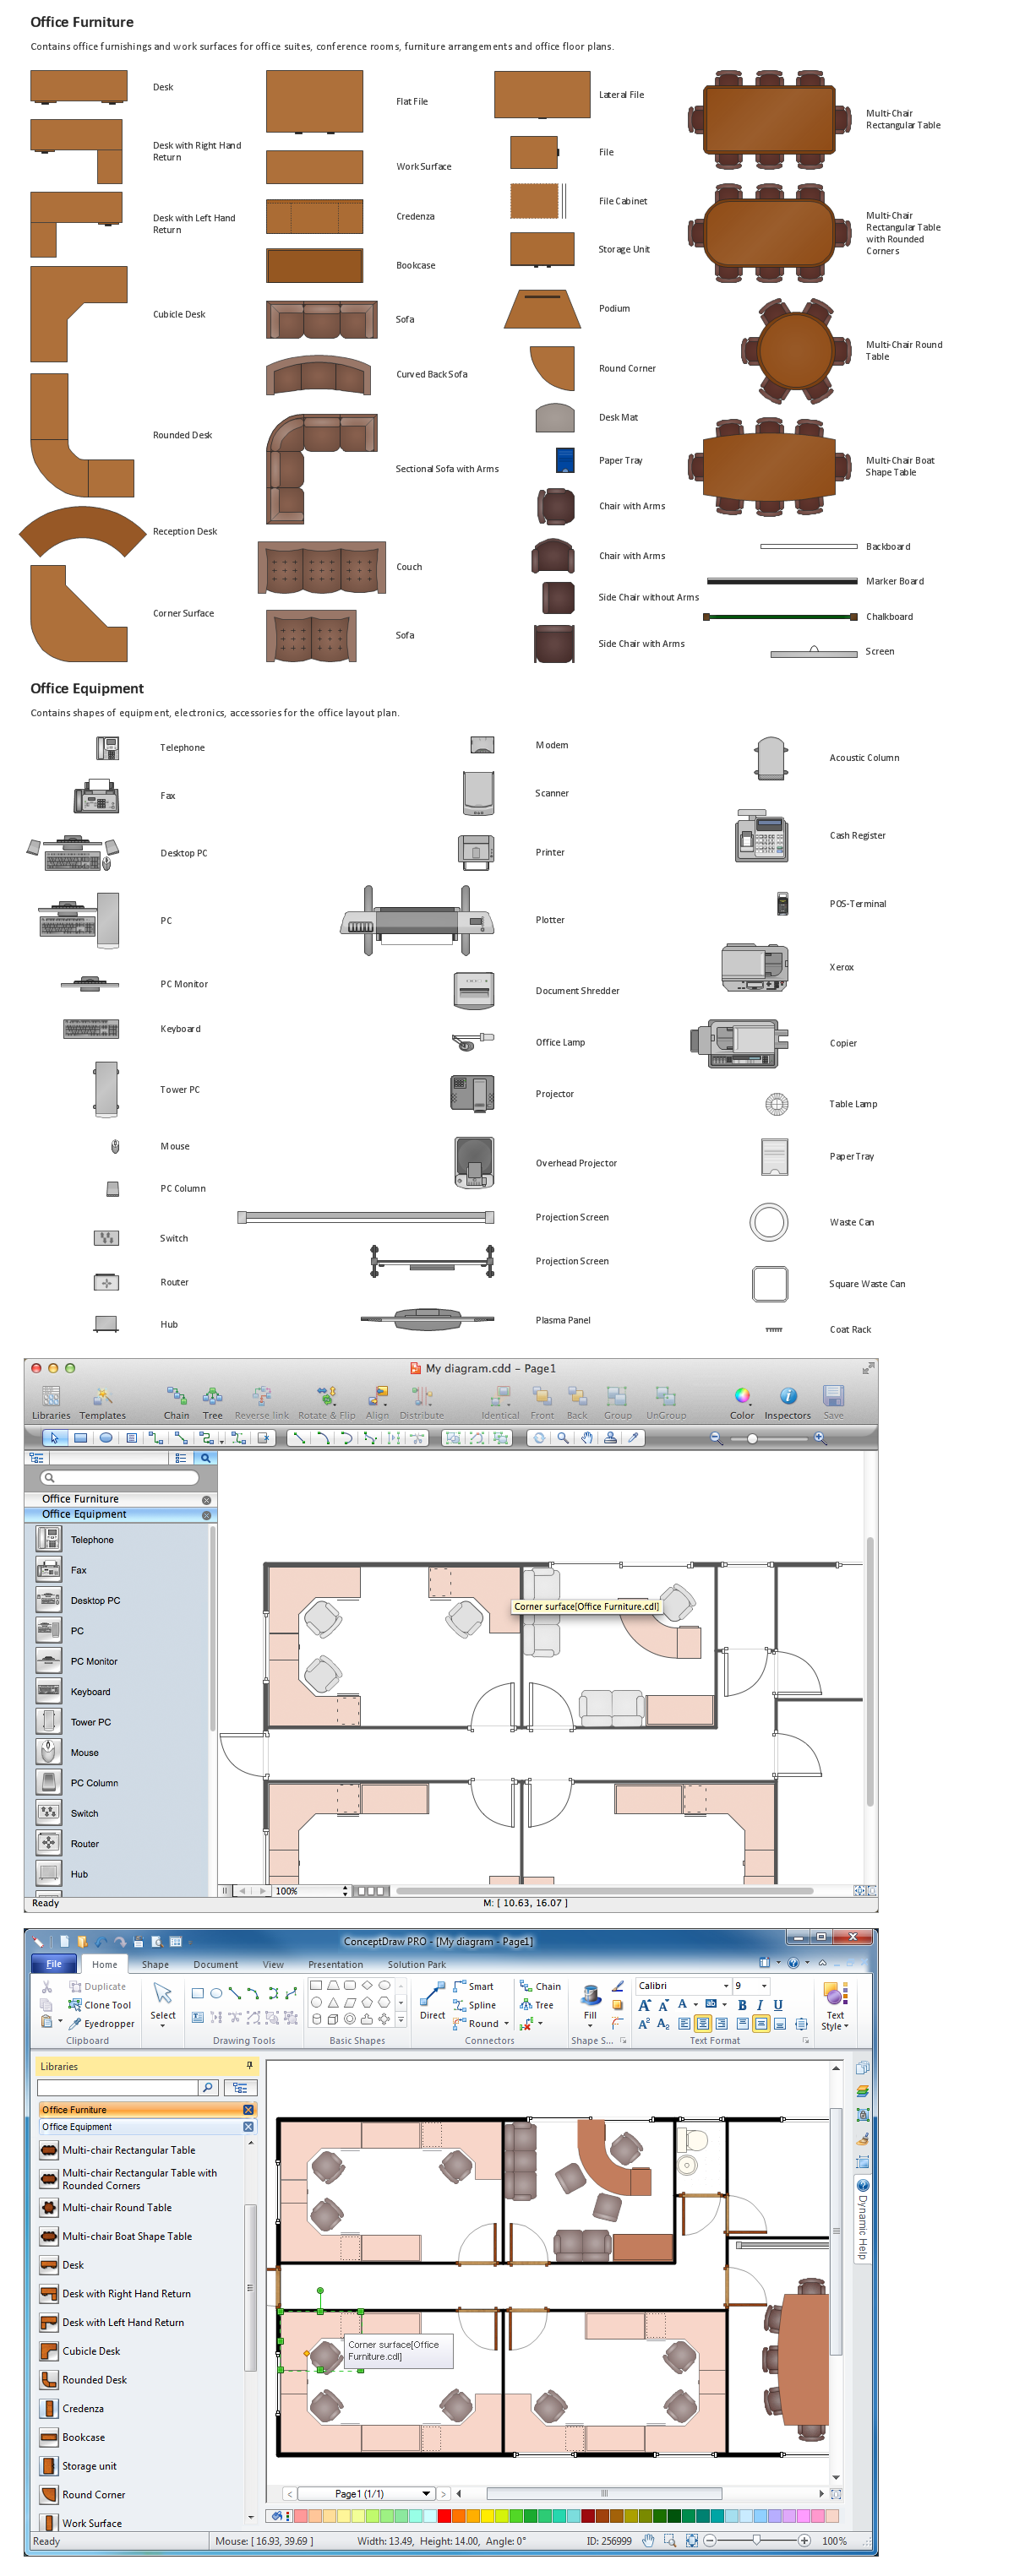 Office layout plans interior design office layout plan for Interior design office programming questionnaire